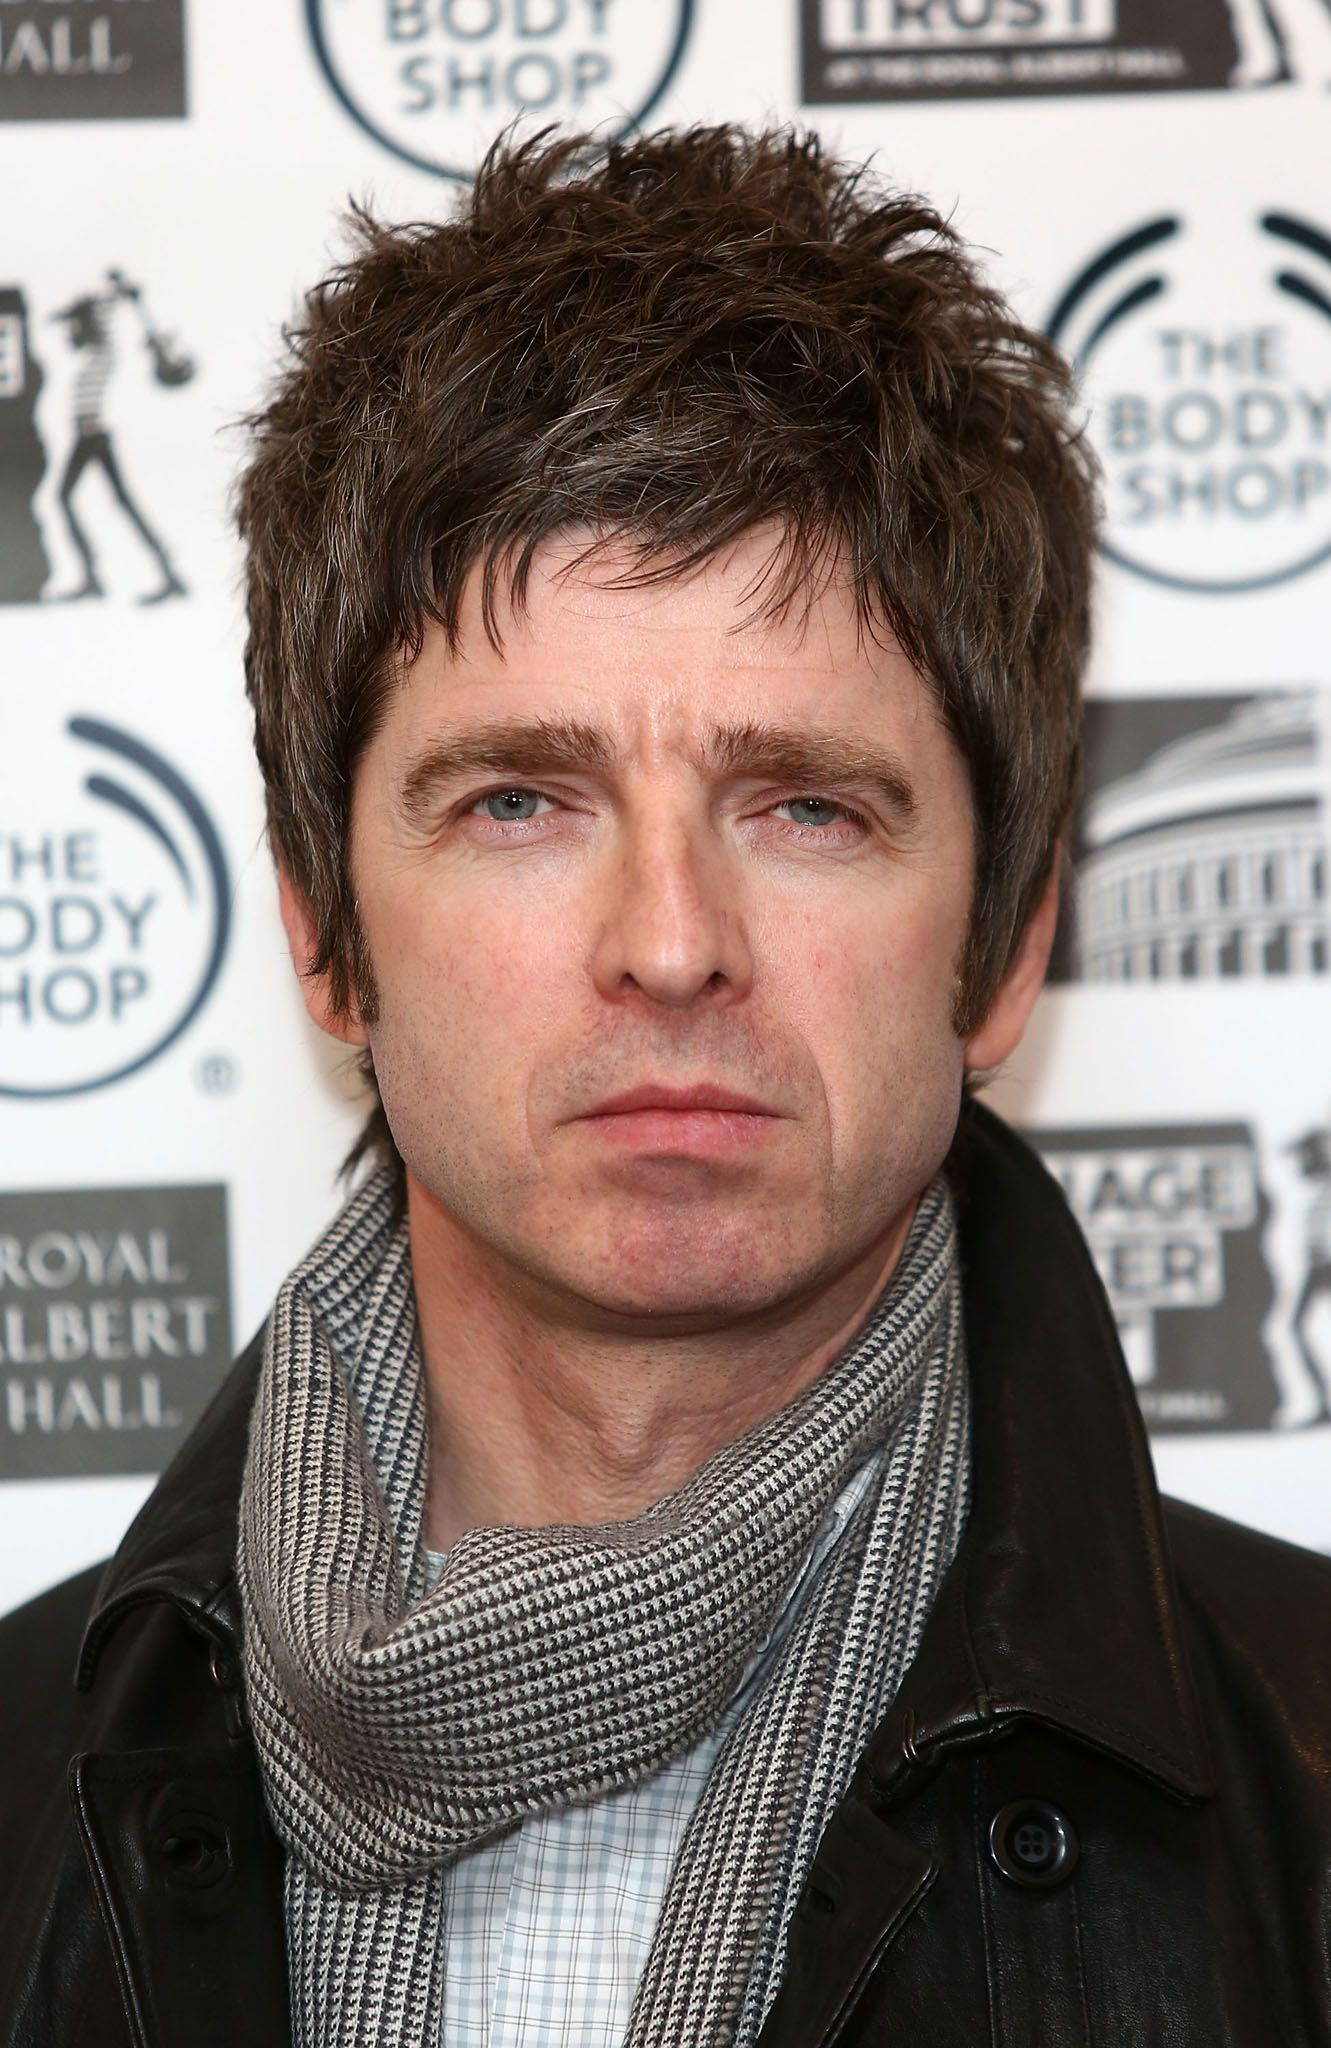 Noel Gallagher On Glastonbury, The Stone Roses, And His 2017 Album ...